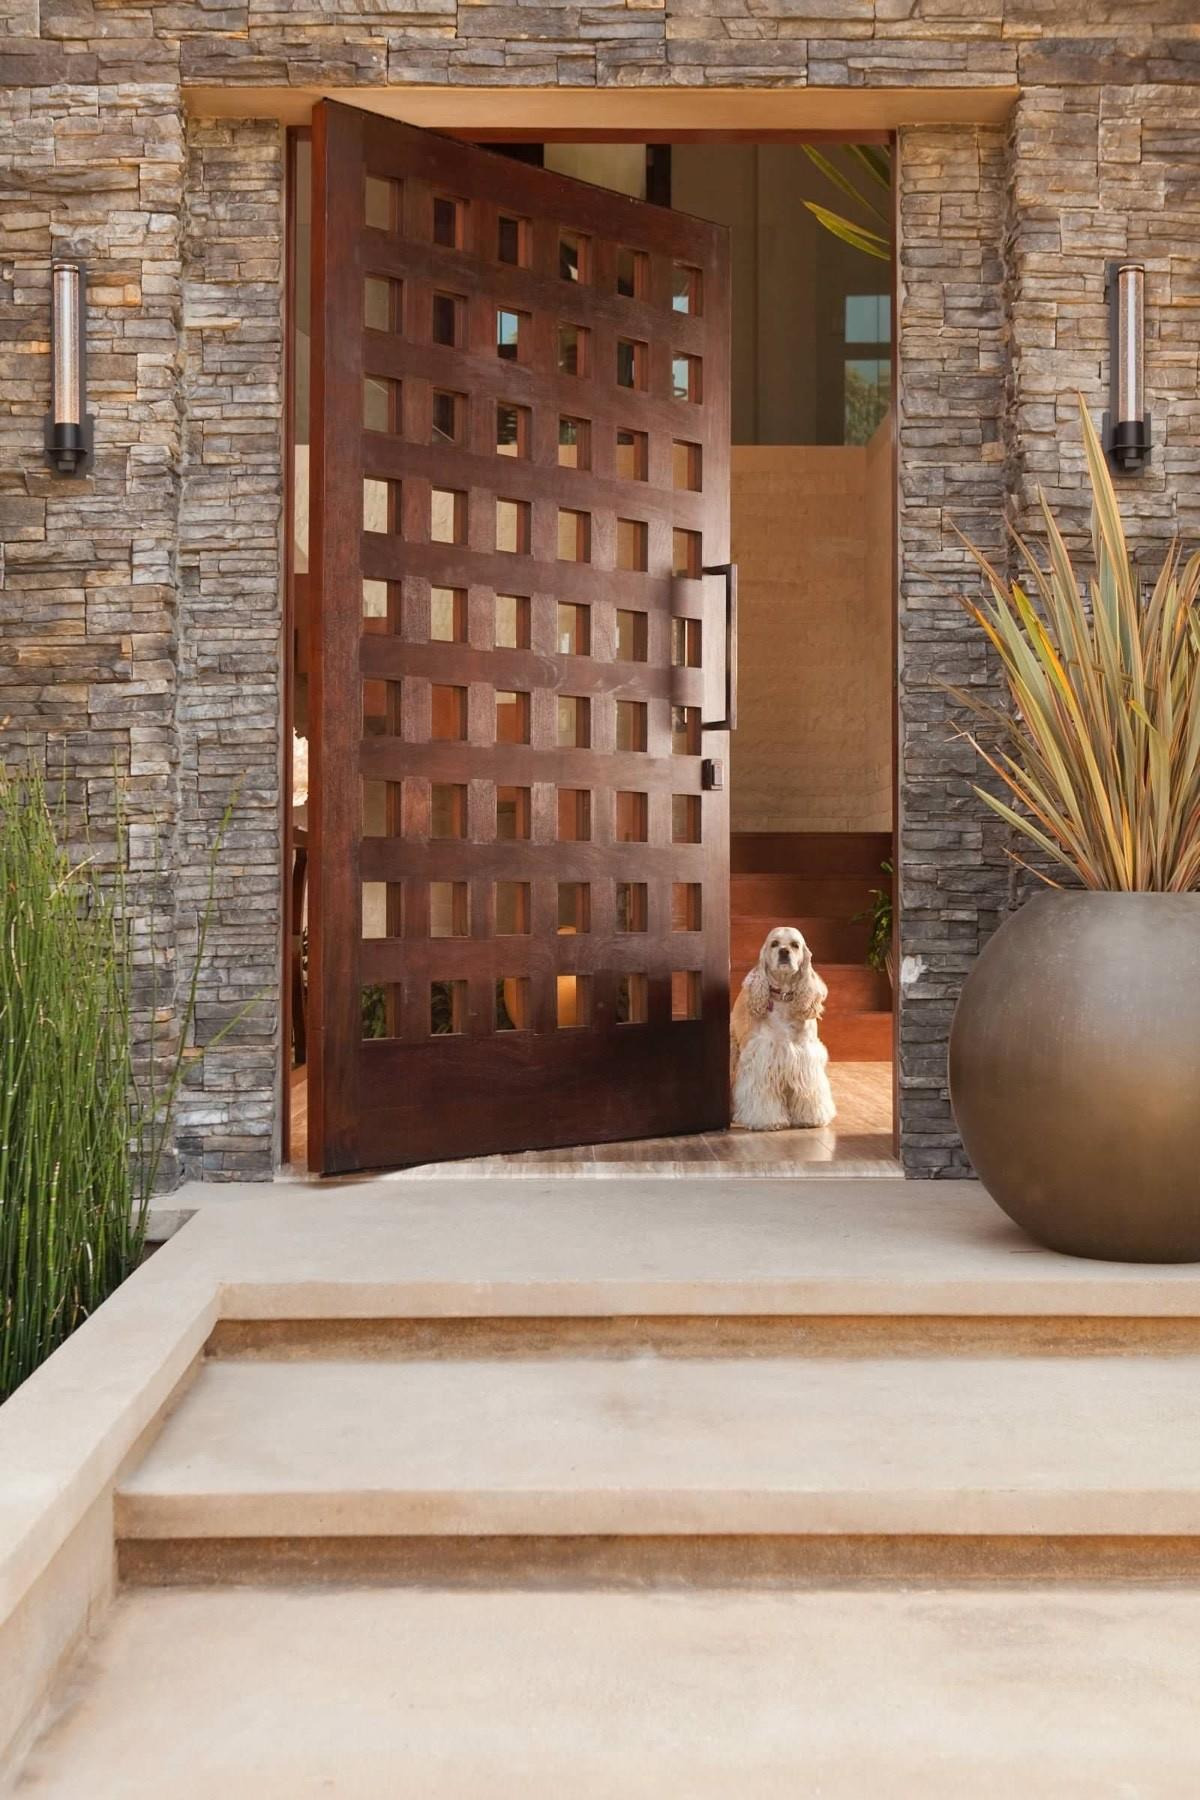 Indian House Entrance Gate Designs Inspirational 37 Resourceful Front Door Designs by top Designers